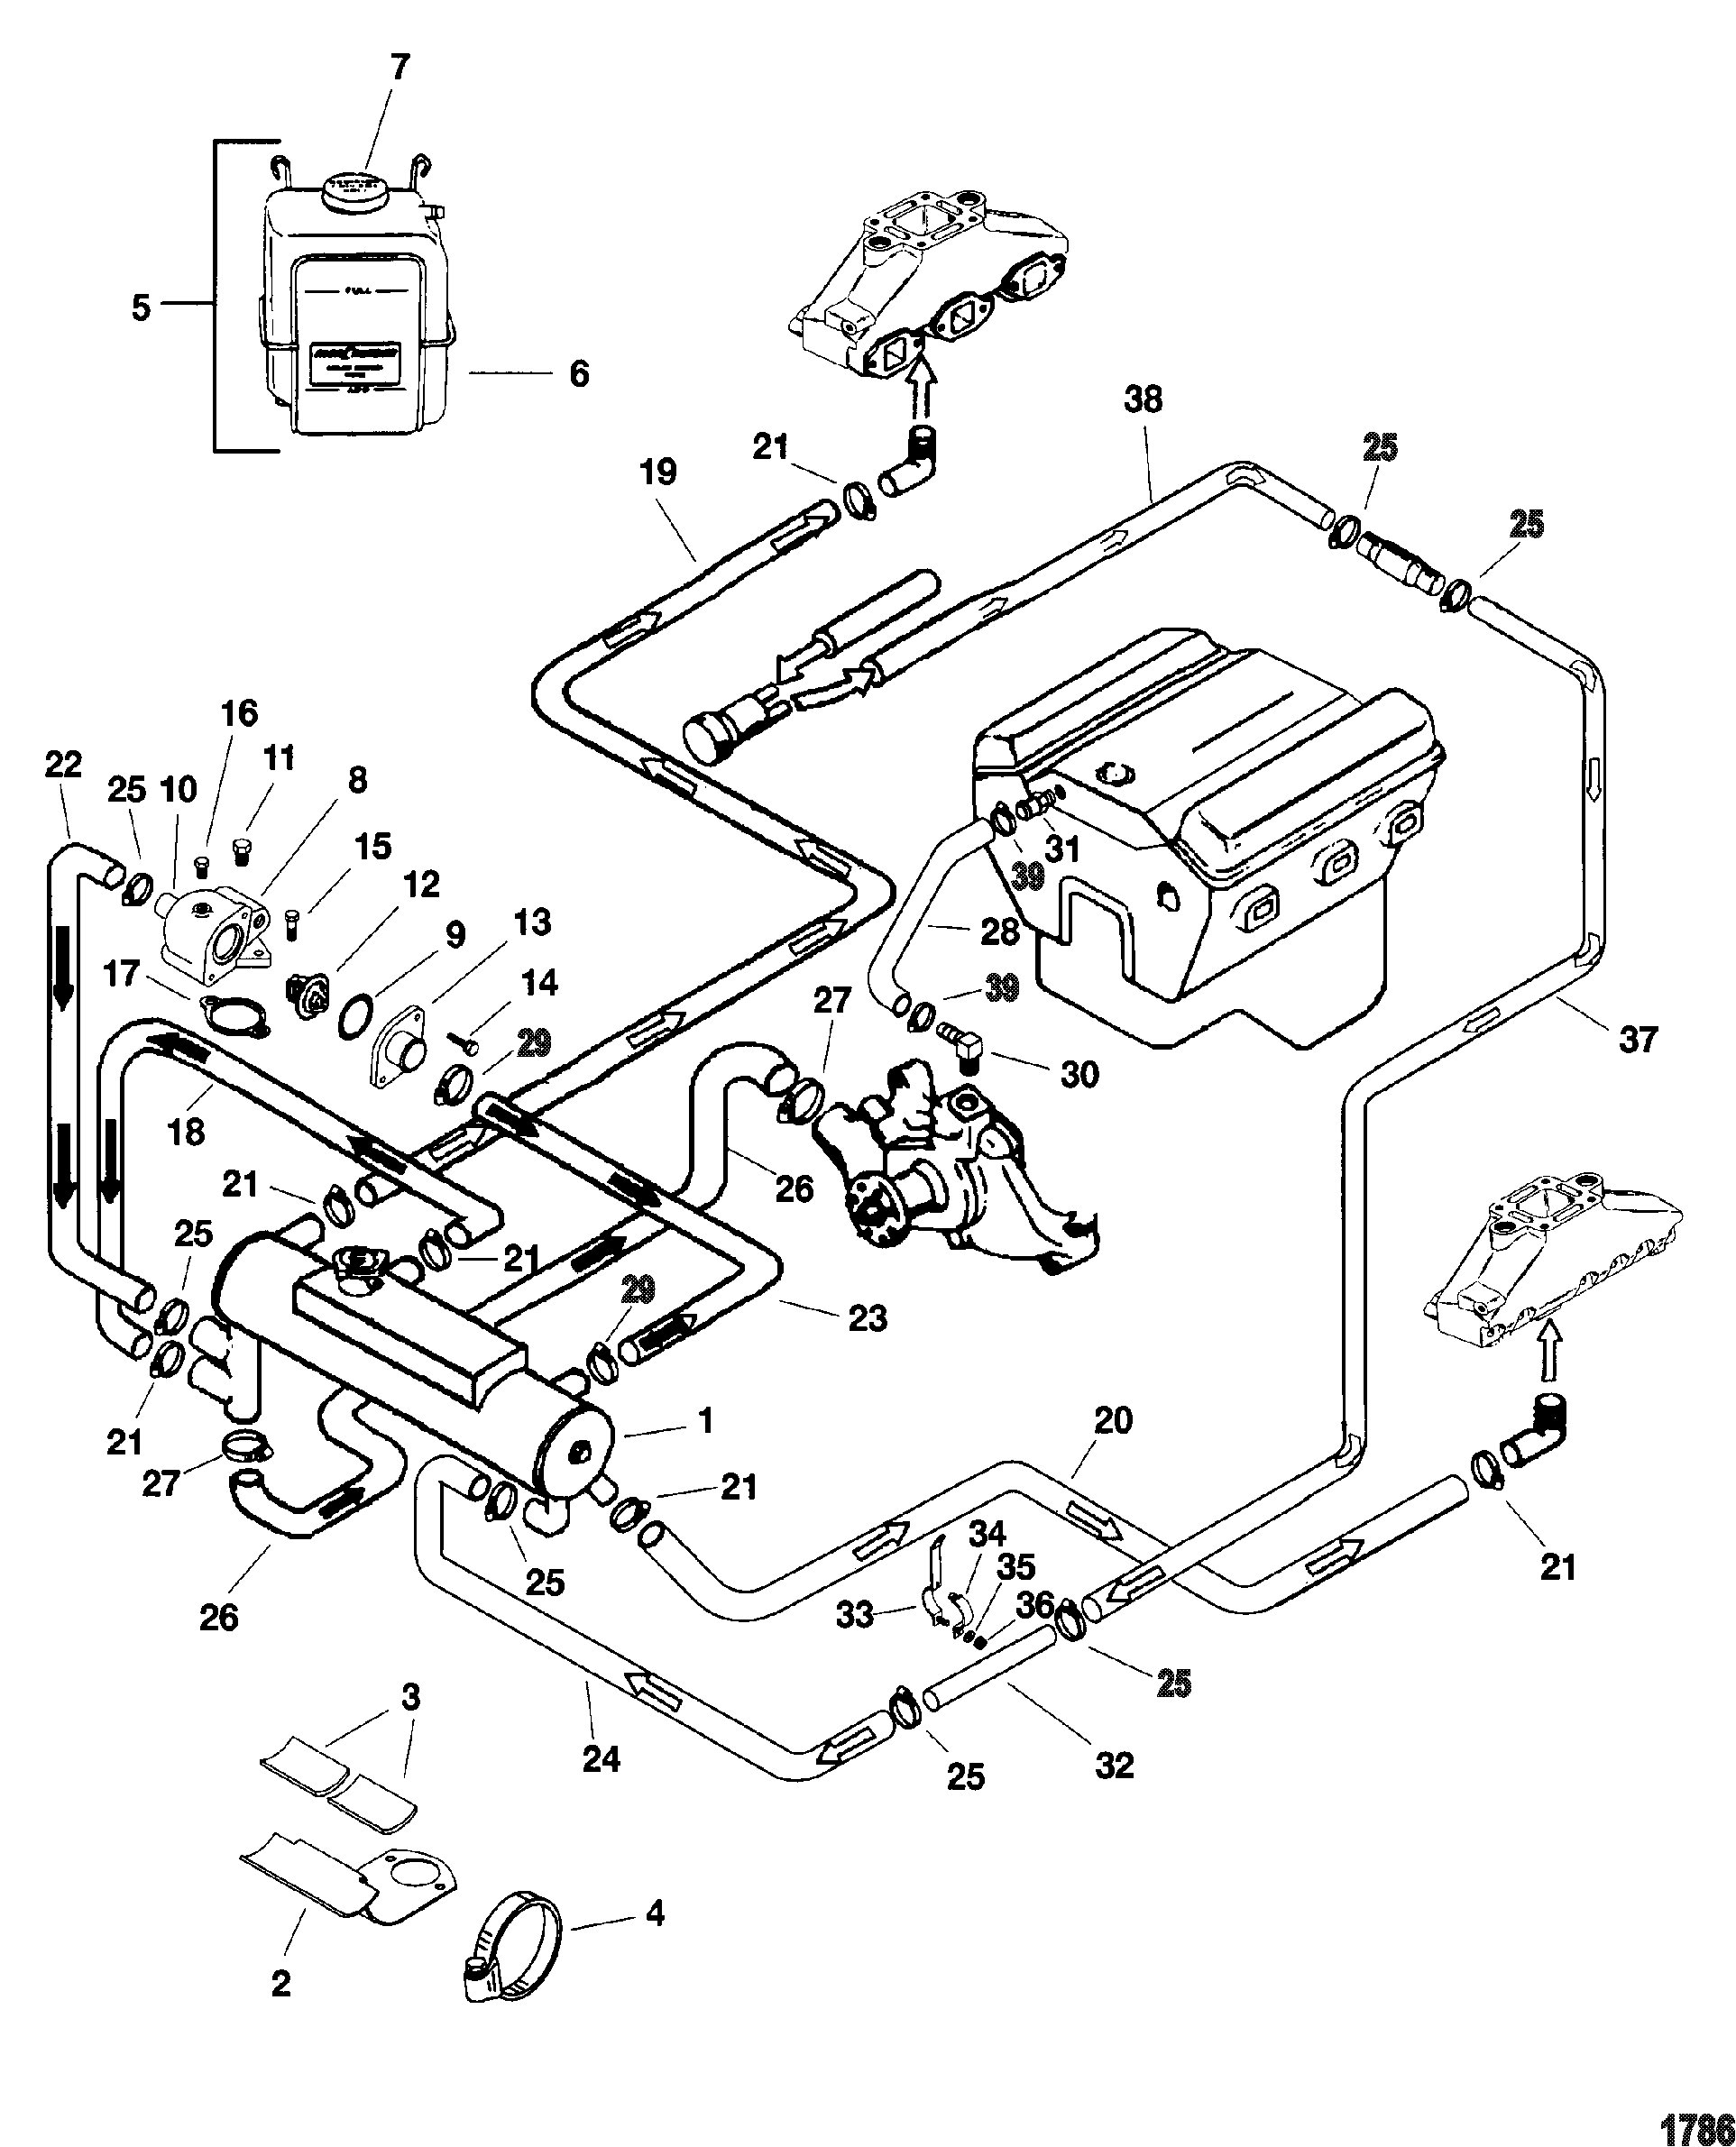 Crank Sensor Location 68932 as well 24v Cummins Engine Diagram besides 1221317 95 F250 Steering Links besides Gmc Savana 2003 2005 Fuse Box Diagram as well 2000 Dodge Dakota Drum Brake Diagram. on 1997 dodge ram 1500 wiring diagram